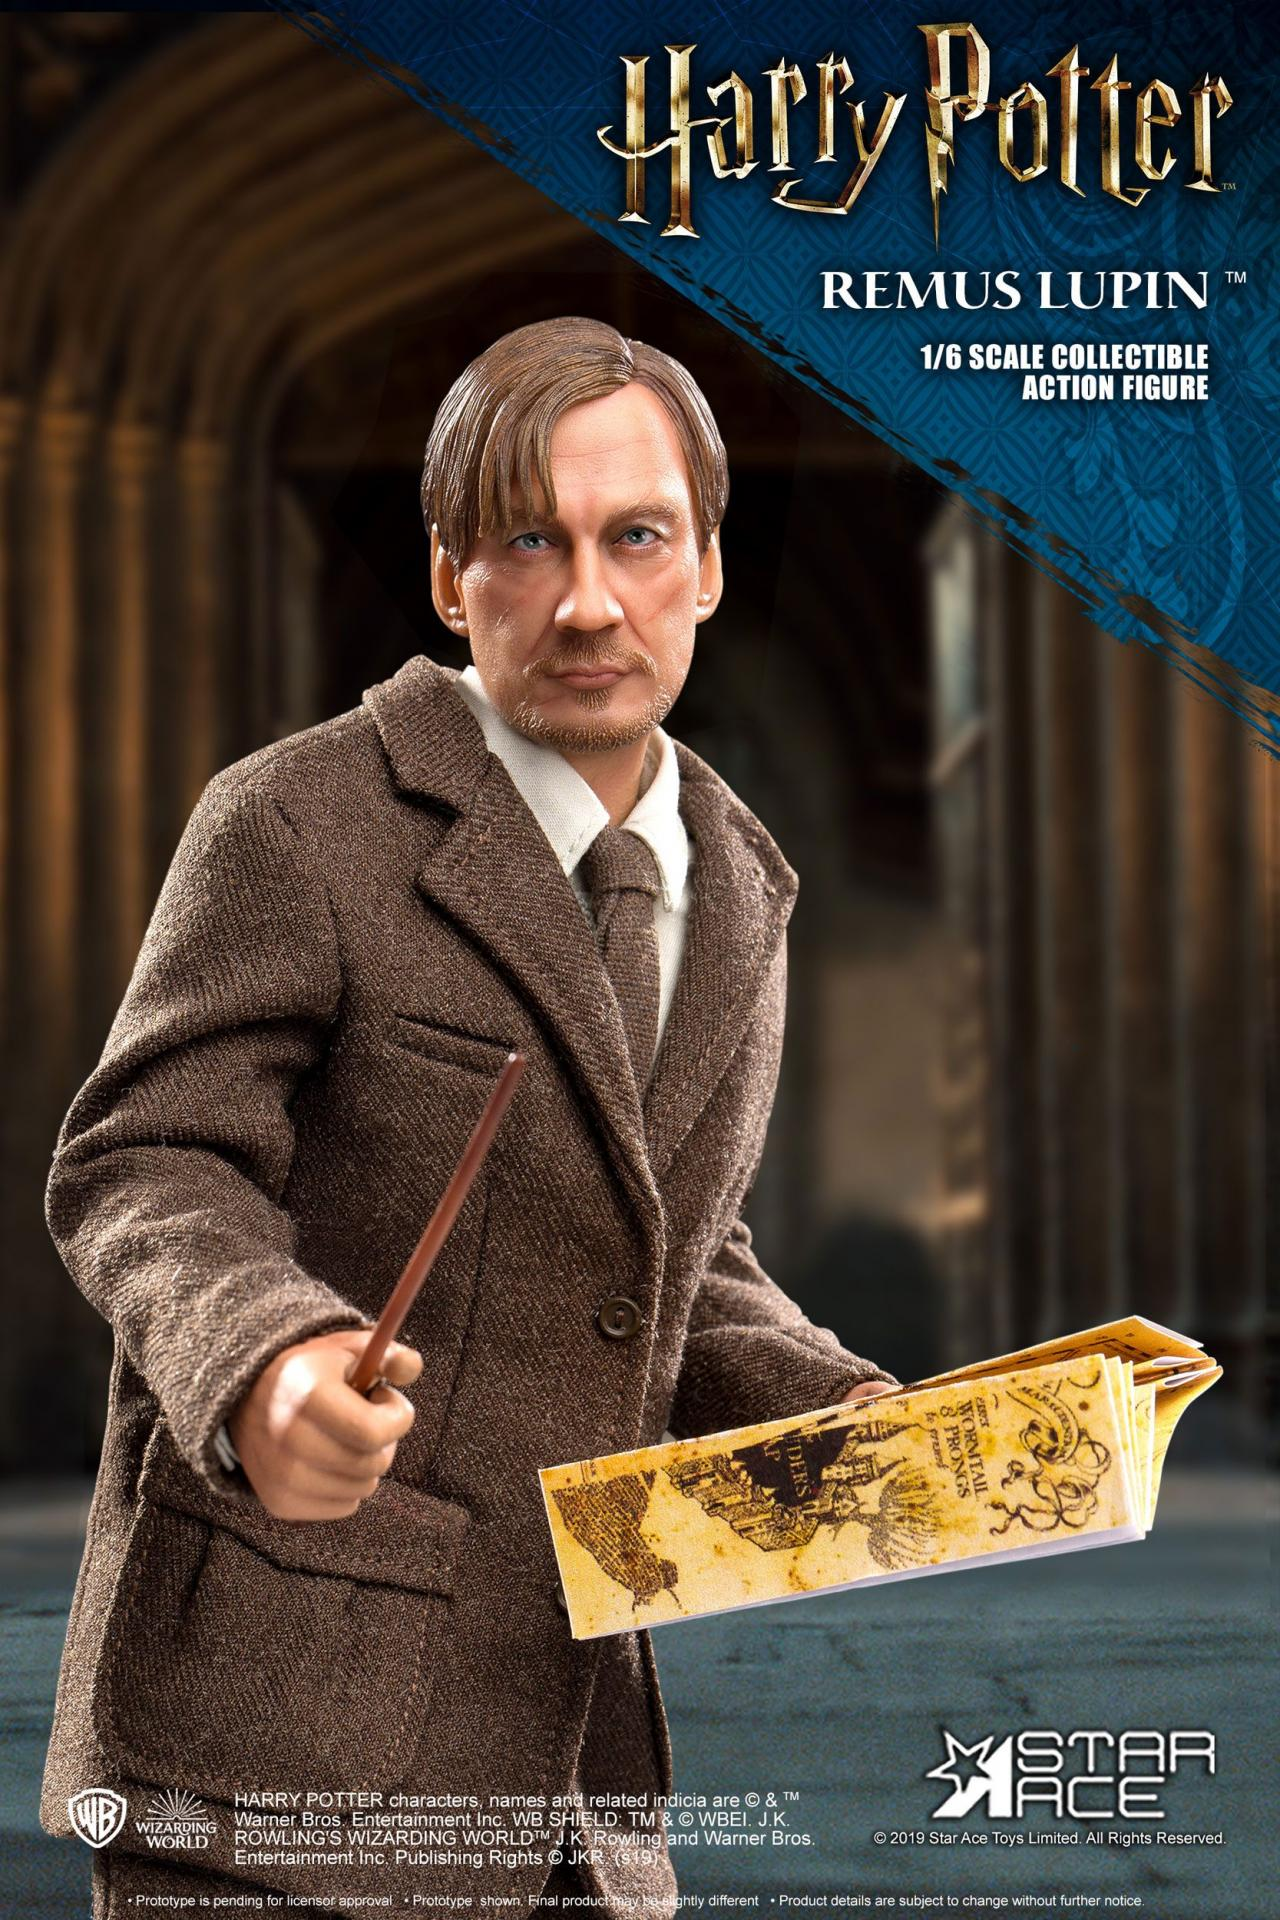 Harry potter my favourite movie figurine 16 remus lupin deluxe ver 30 cm02 6